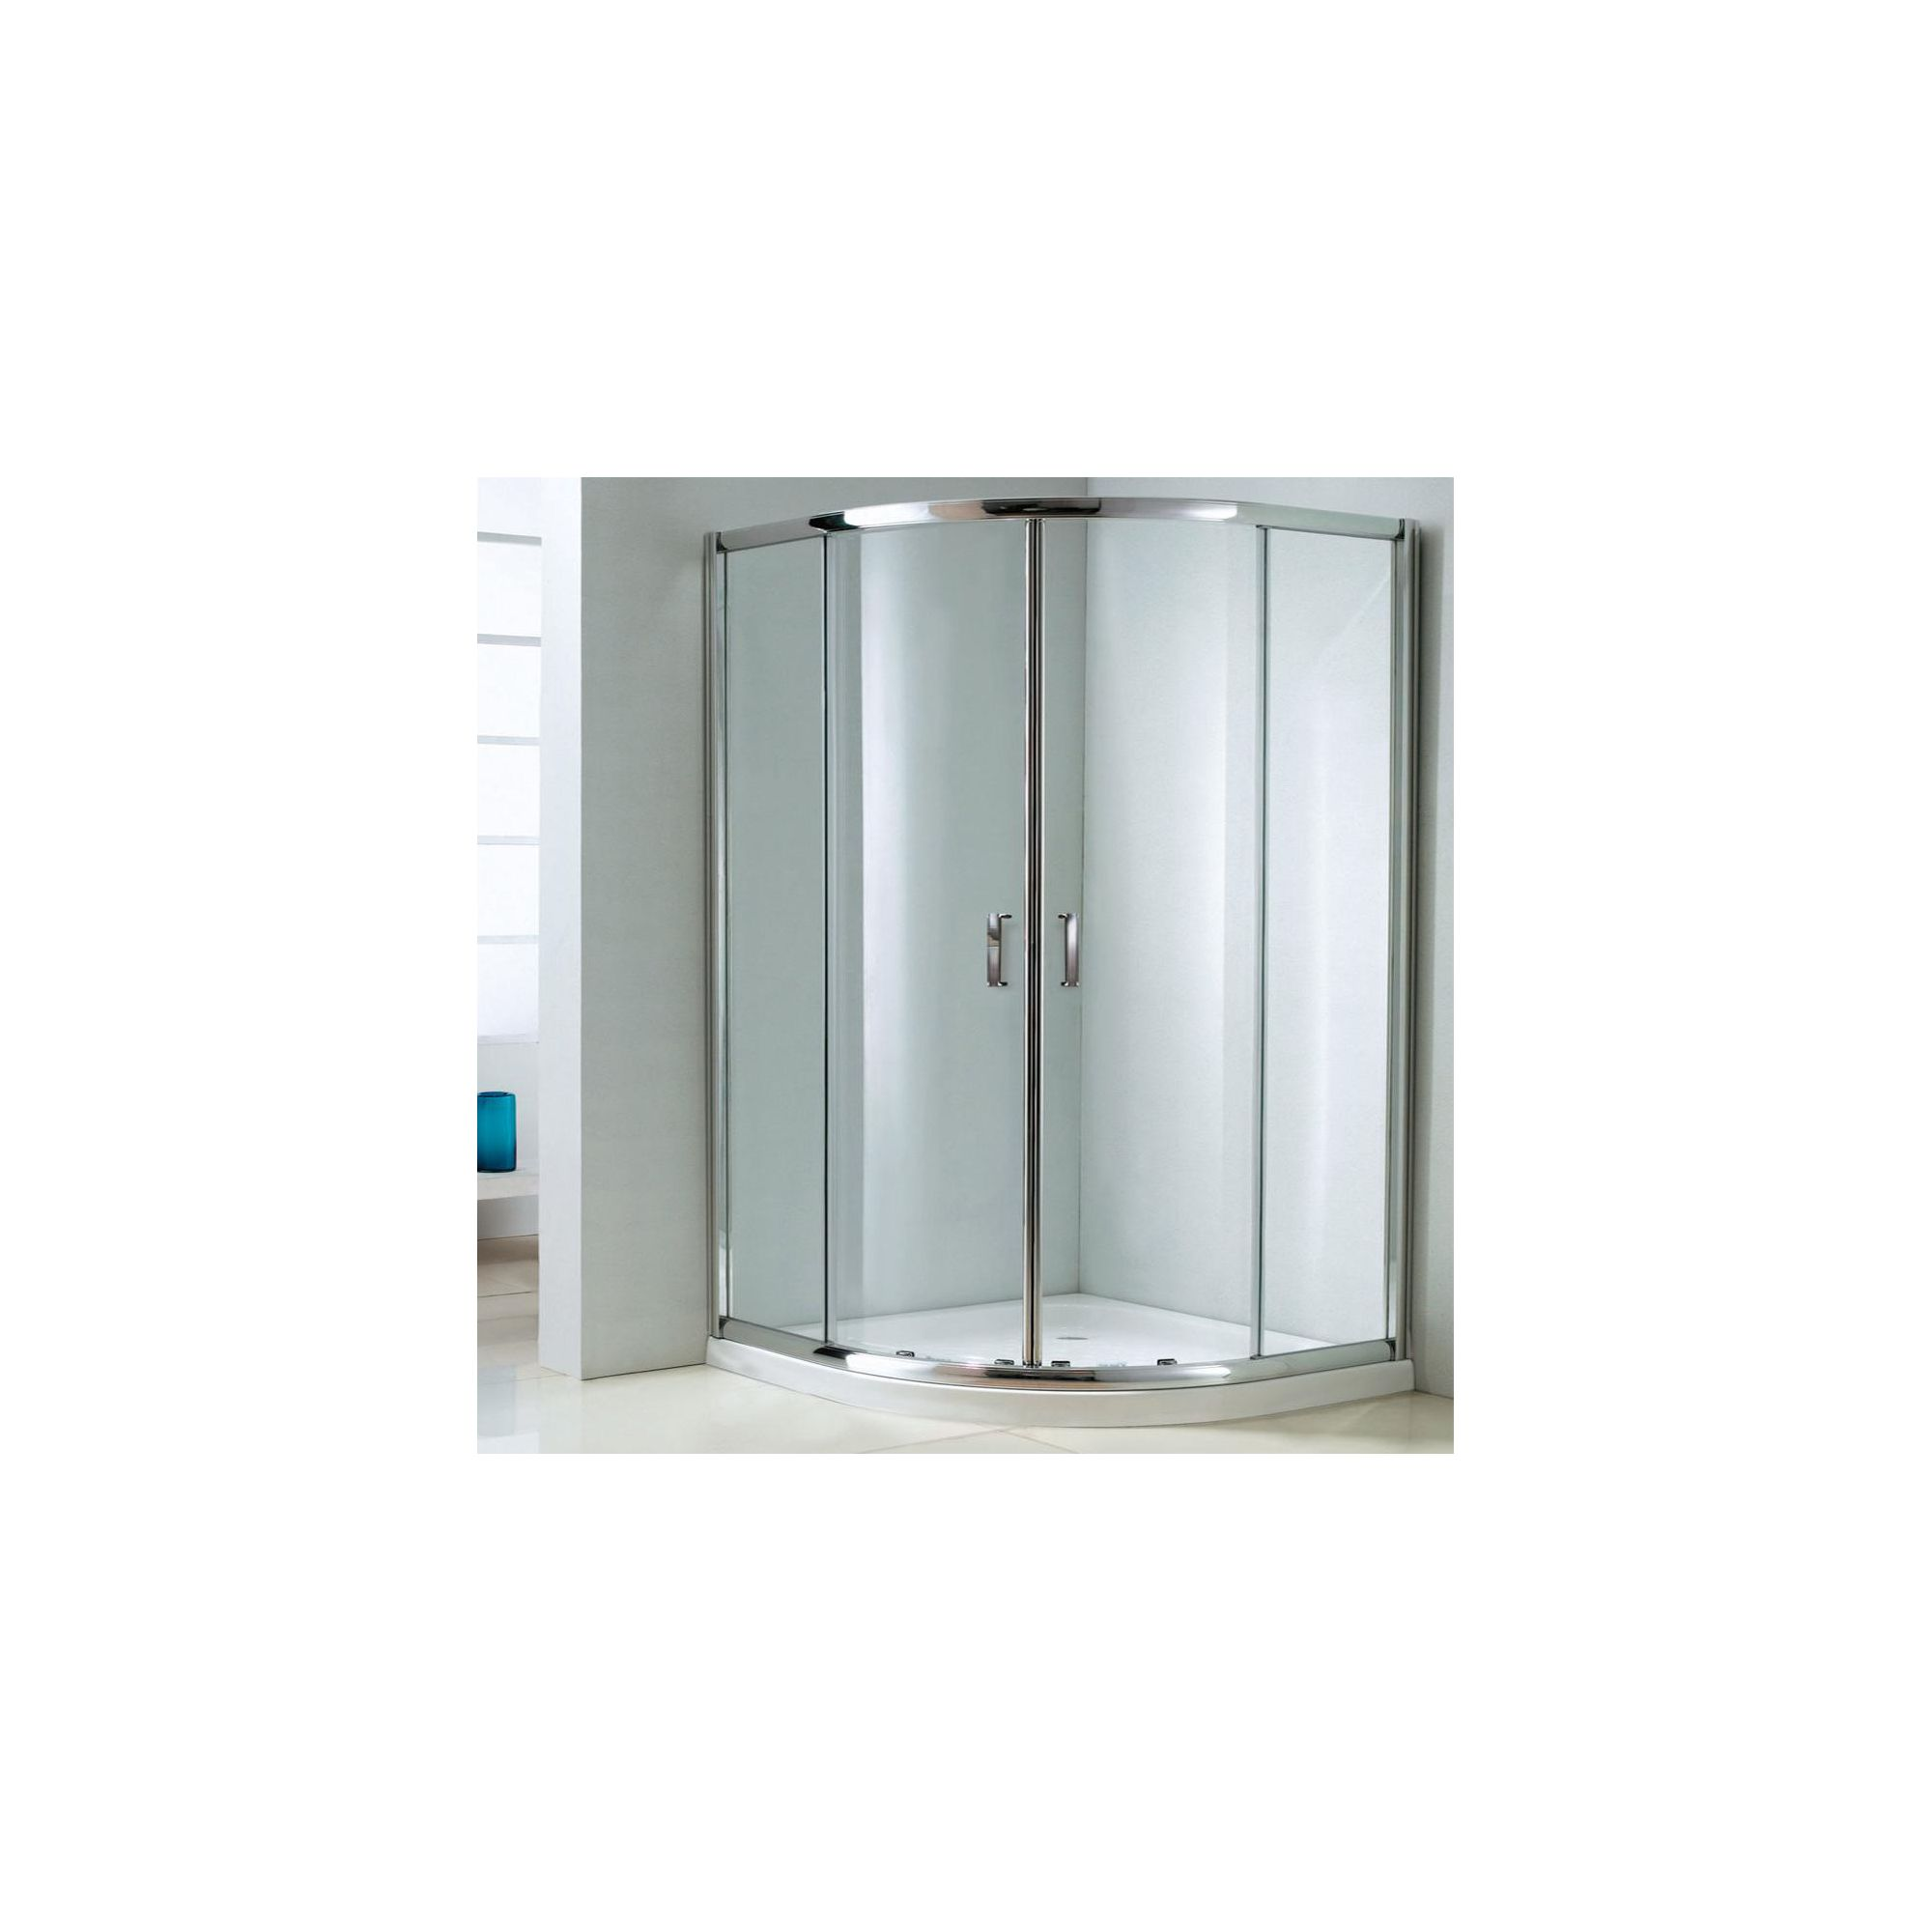 Duchy Style Double Offset Quadrant Door Shower Enclosure, 1200mm x 900mm, 6mm Glass, Low Profile Tray, Left Handed at Tesco Direct